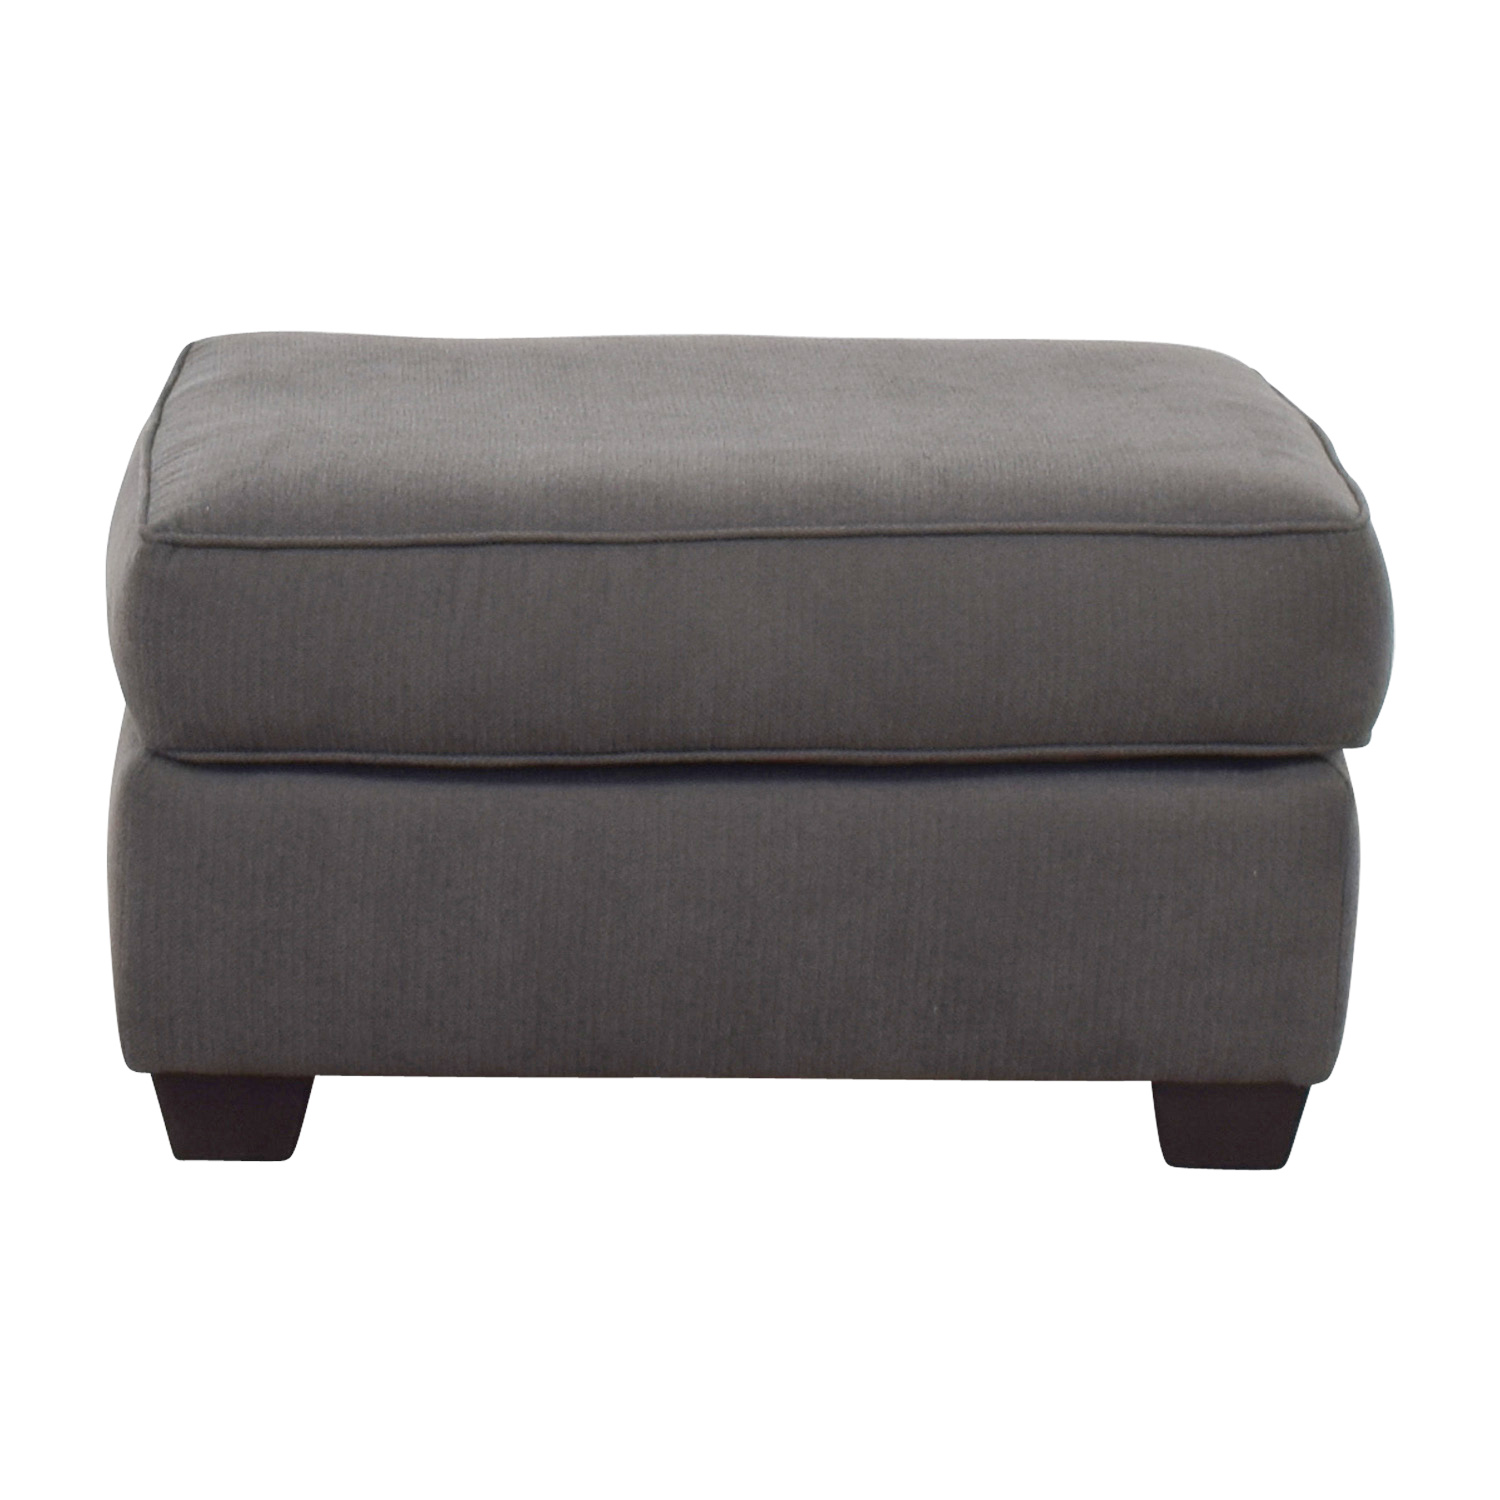 buy Pilgrim Furniture Pilgrim Furniture Gray Ottoman online